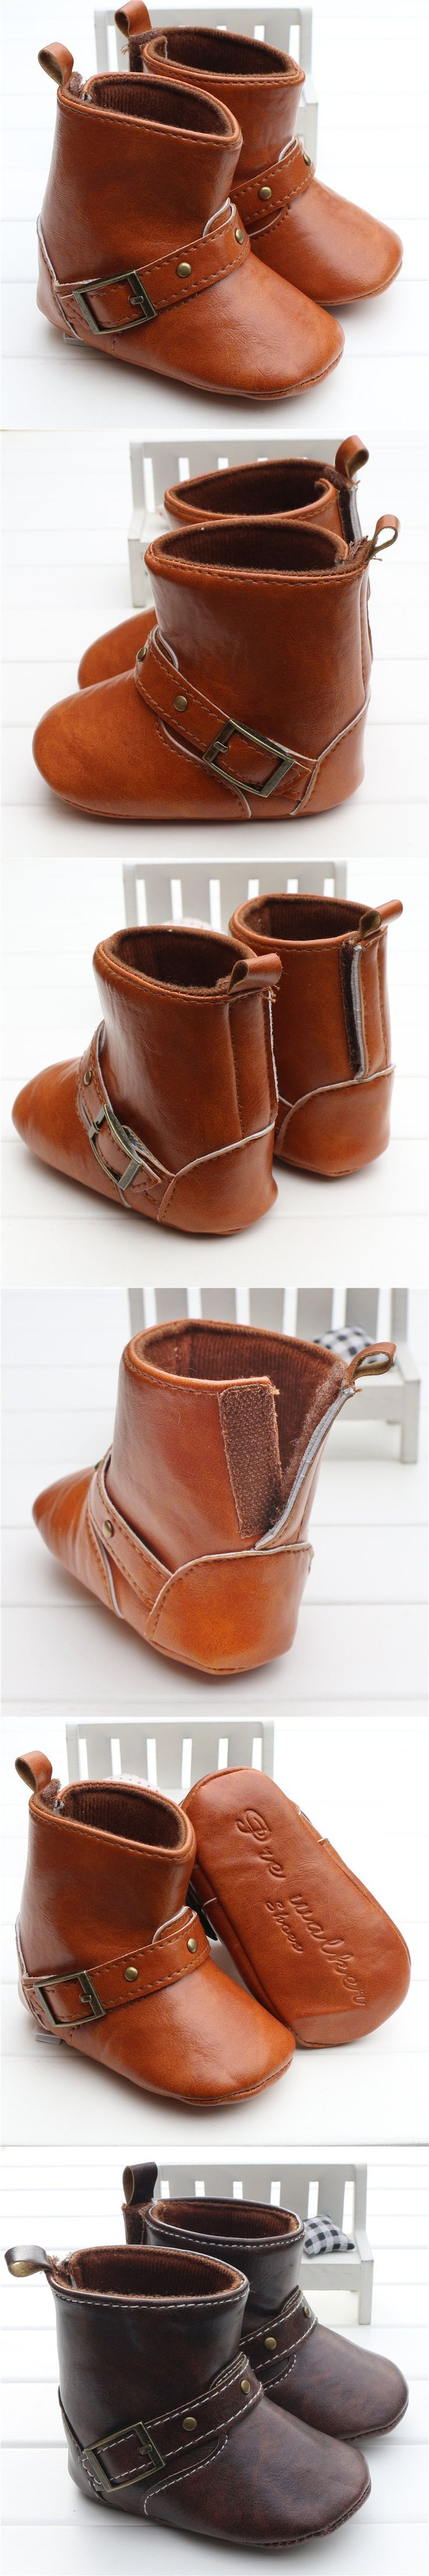 Brown Baby Classic Cowboy Boots PU Buckle Soft Soled Baby Girl Winter Boots Infant Toddler Winter Shoes First Walkers $10.55